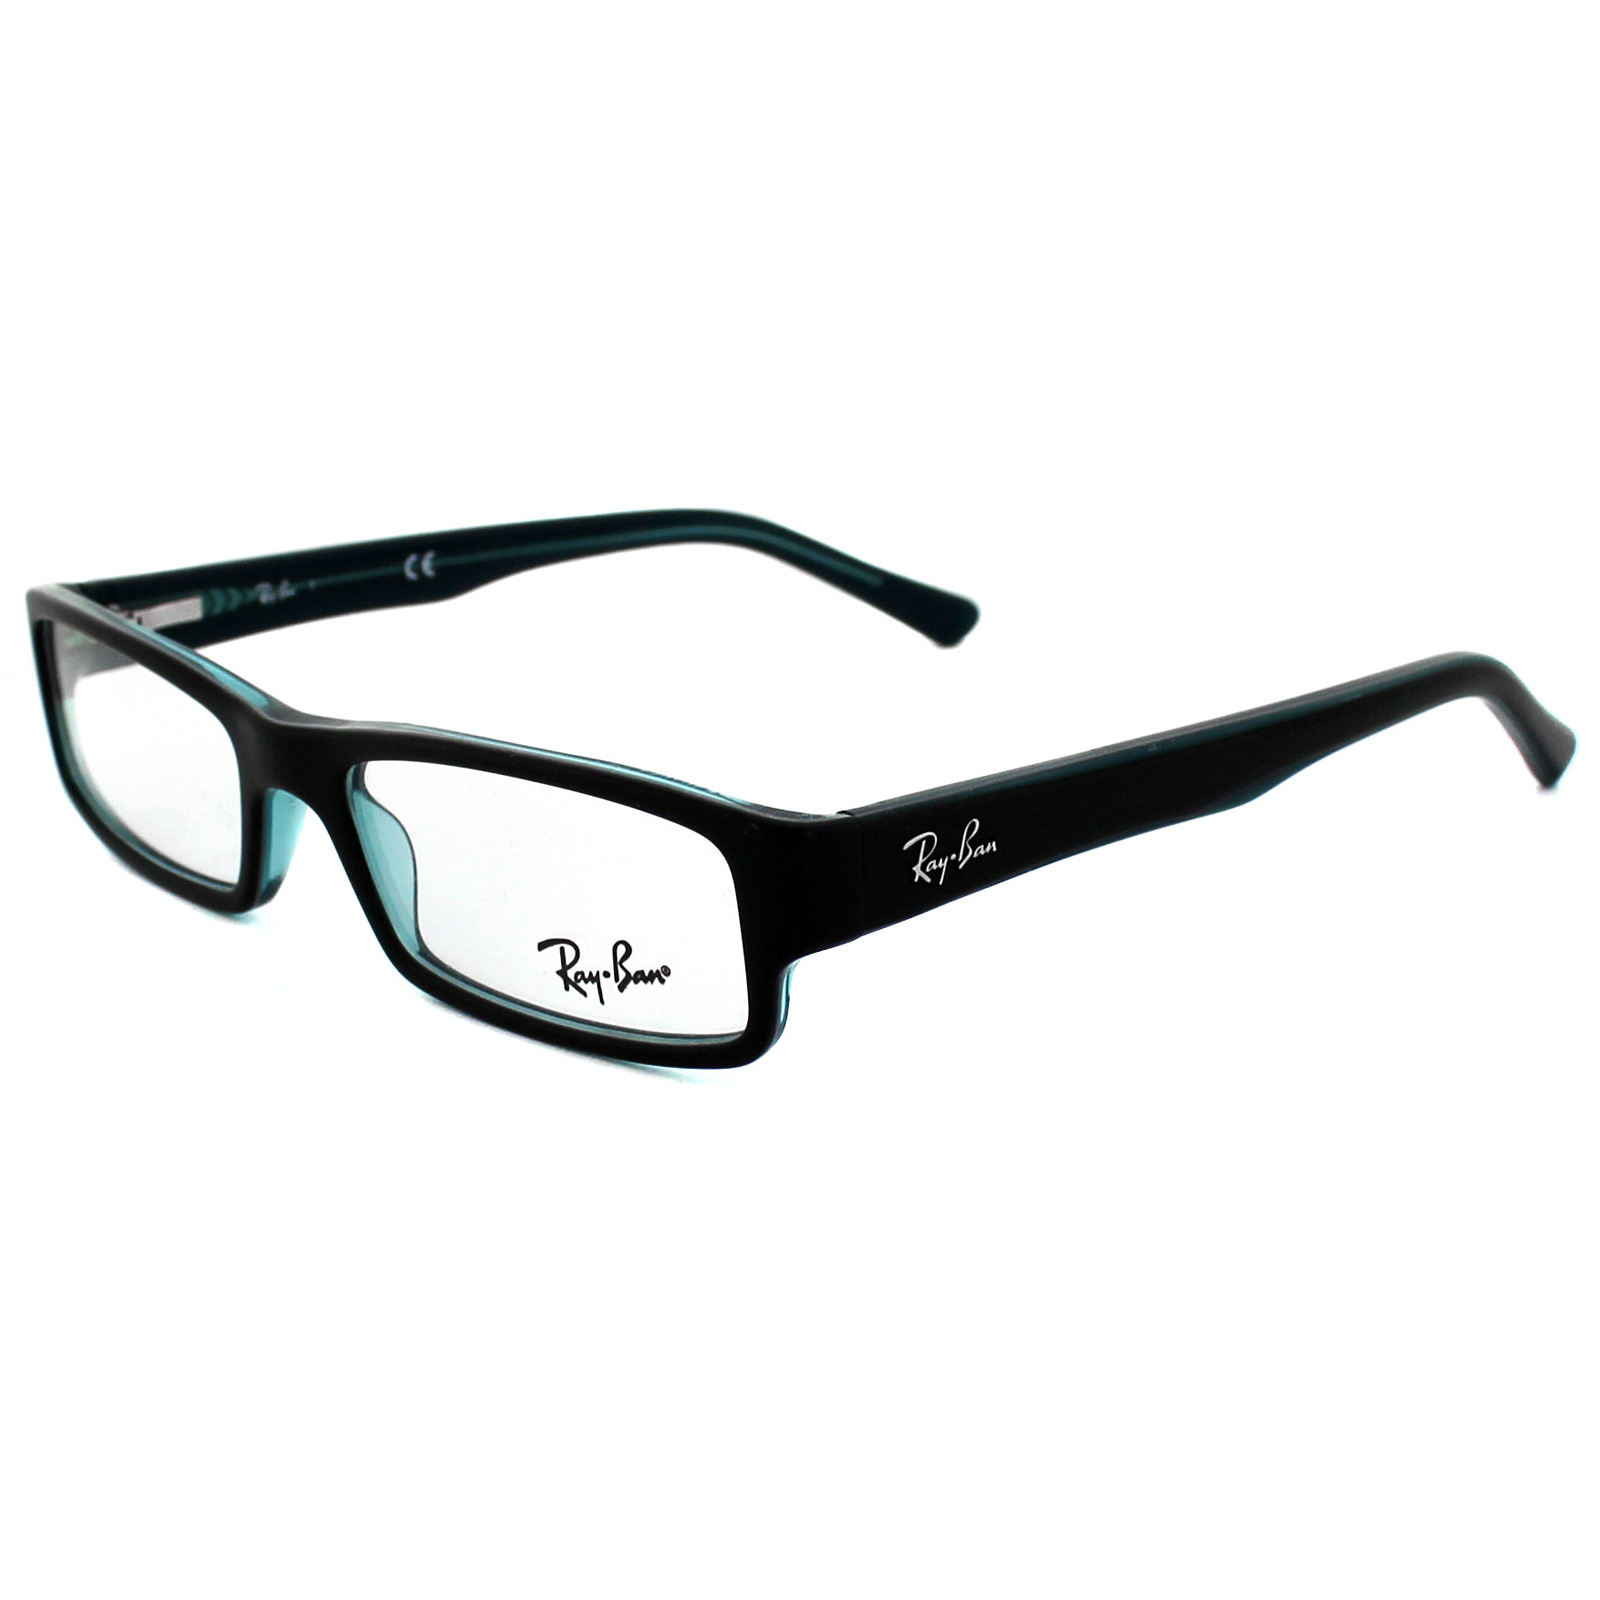 Glasses Frame Help : Ray-Ban Glasses Frames 5246 5092 Black Grey Turquoise